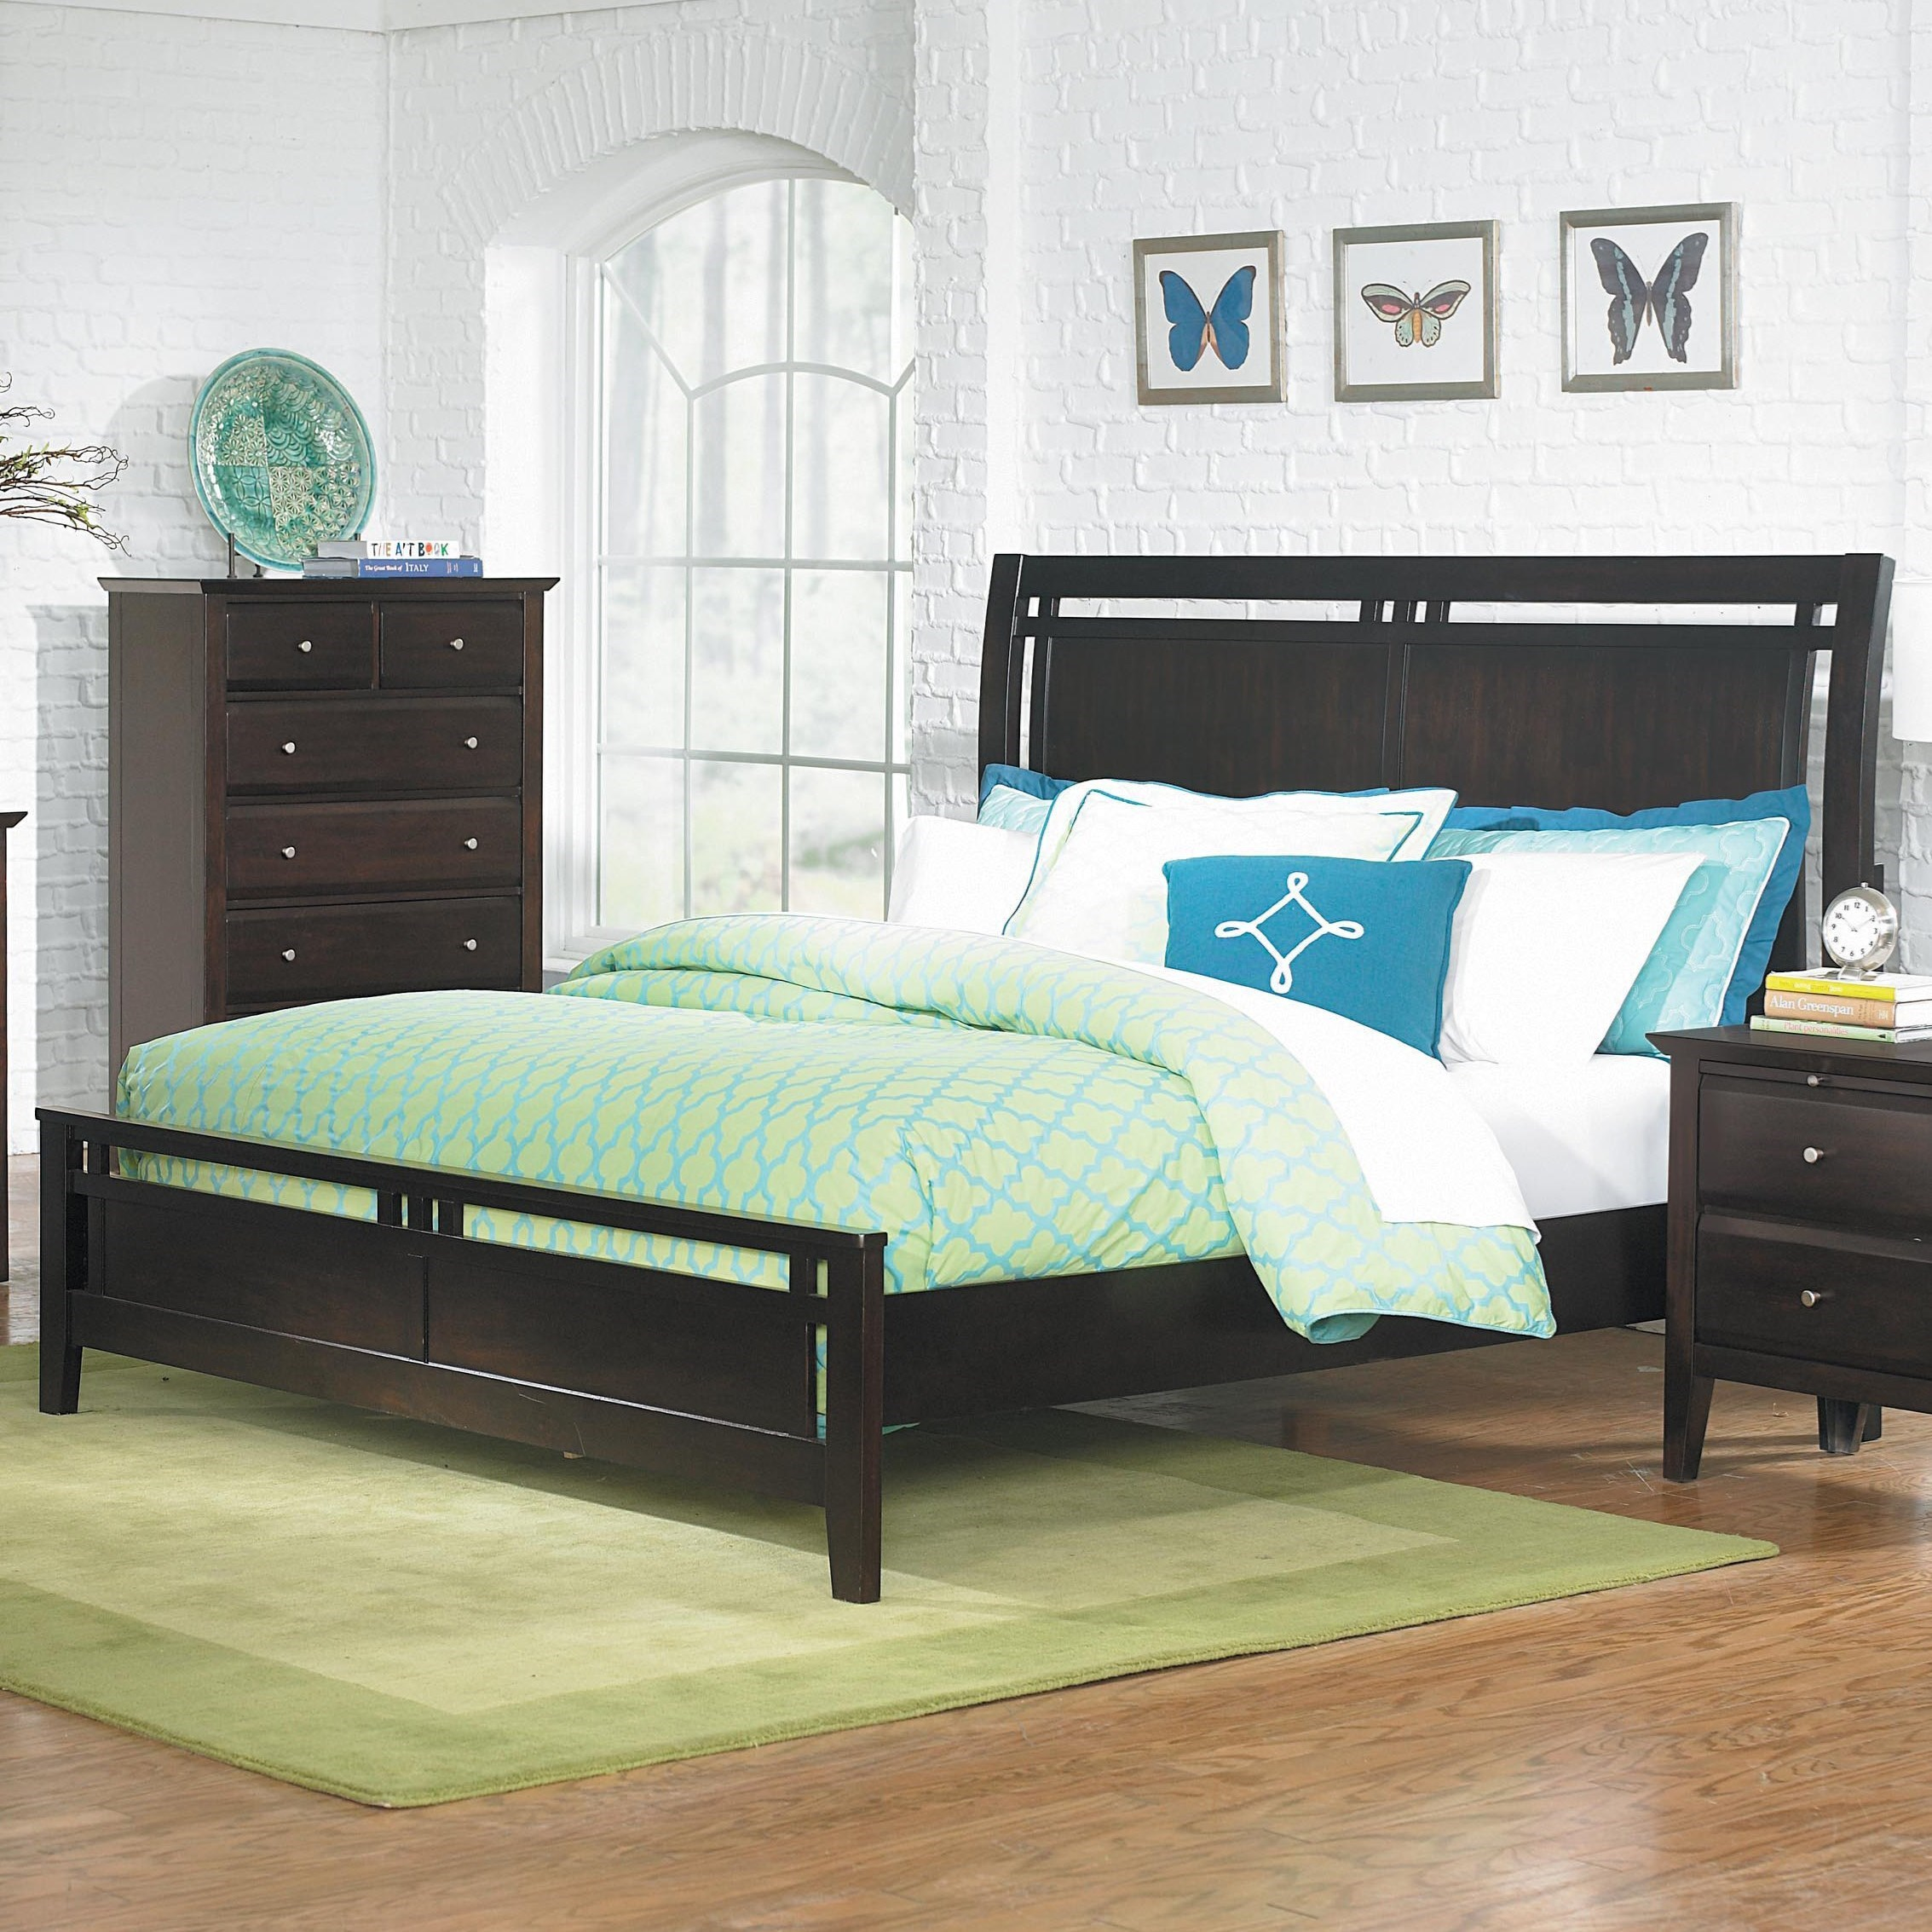 Bed Low Profile Homelegance Verano Casual Queen Low Profile Bed Value